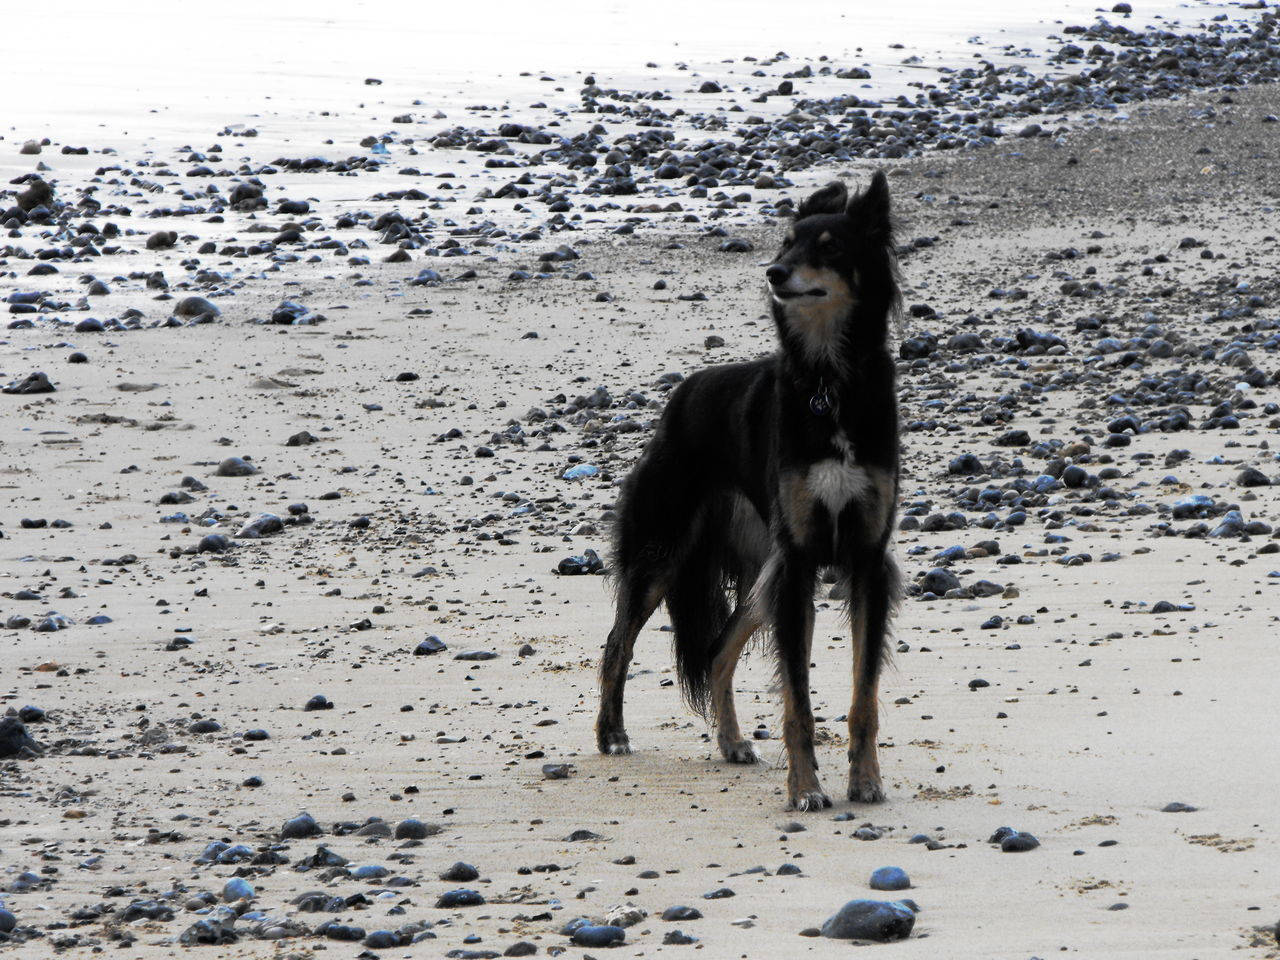 A dog on Mundesley Beach Animal Themes Beach Black Day Dog Domestic Animals Fur Happy Mammal Nature No People Outdoors Pebbles Pets Sand Seaside Sky